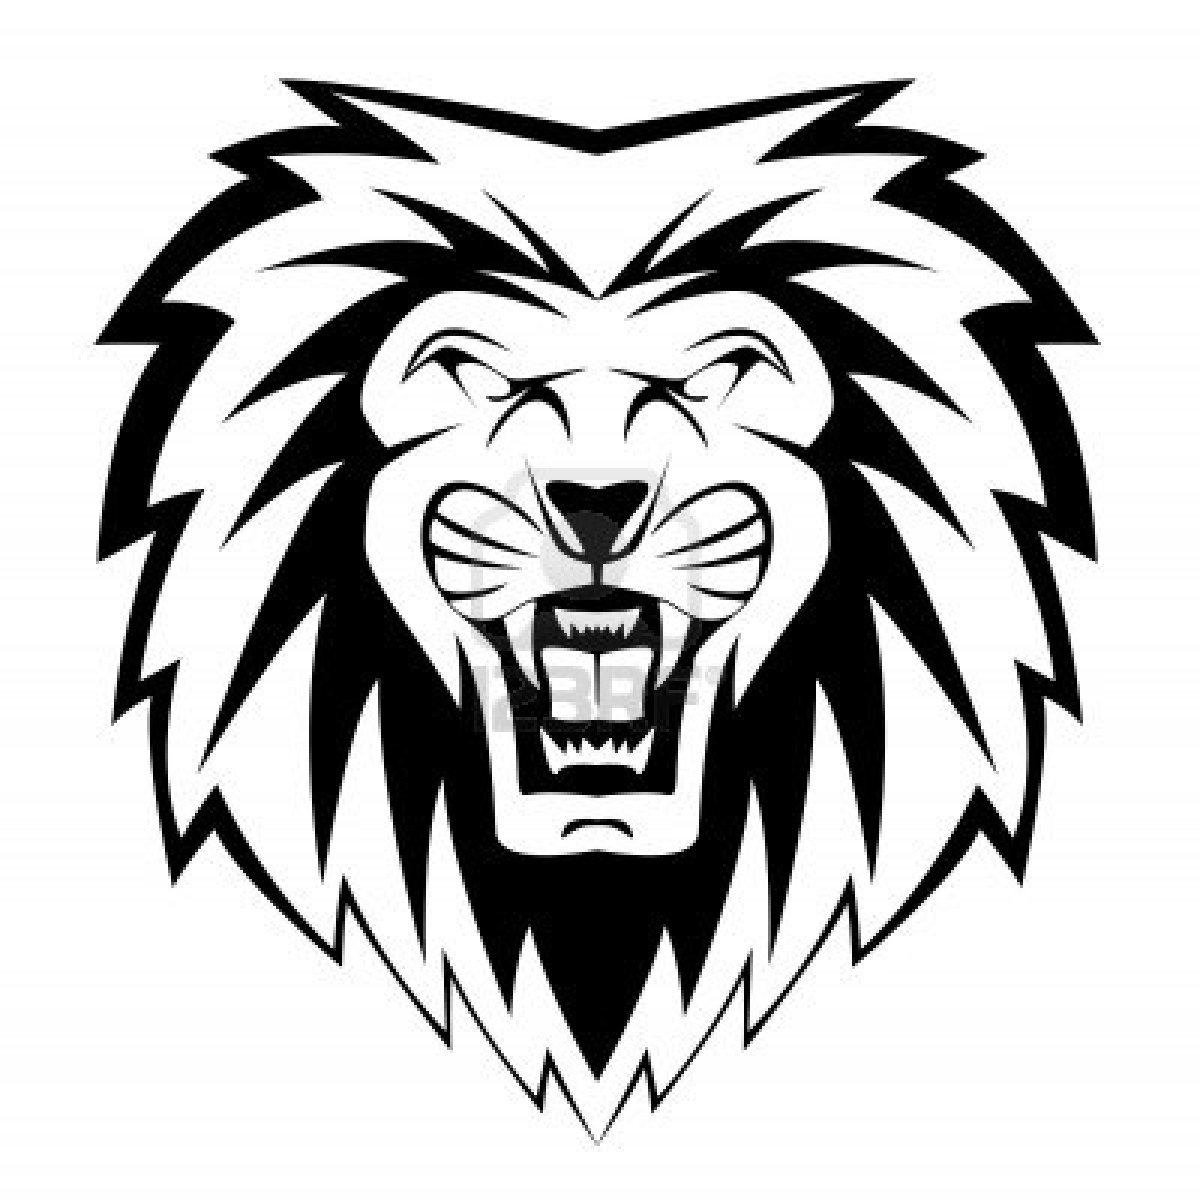 Free Picture Of A Lion Face Download Free Clip Art Free